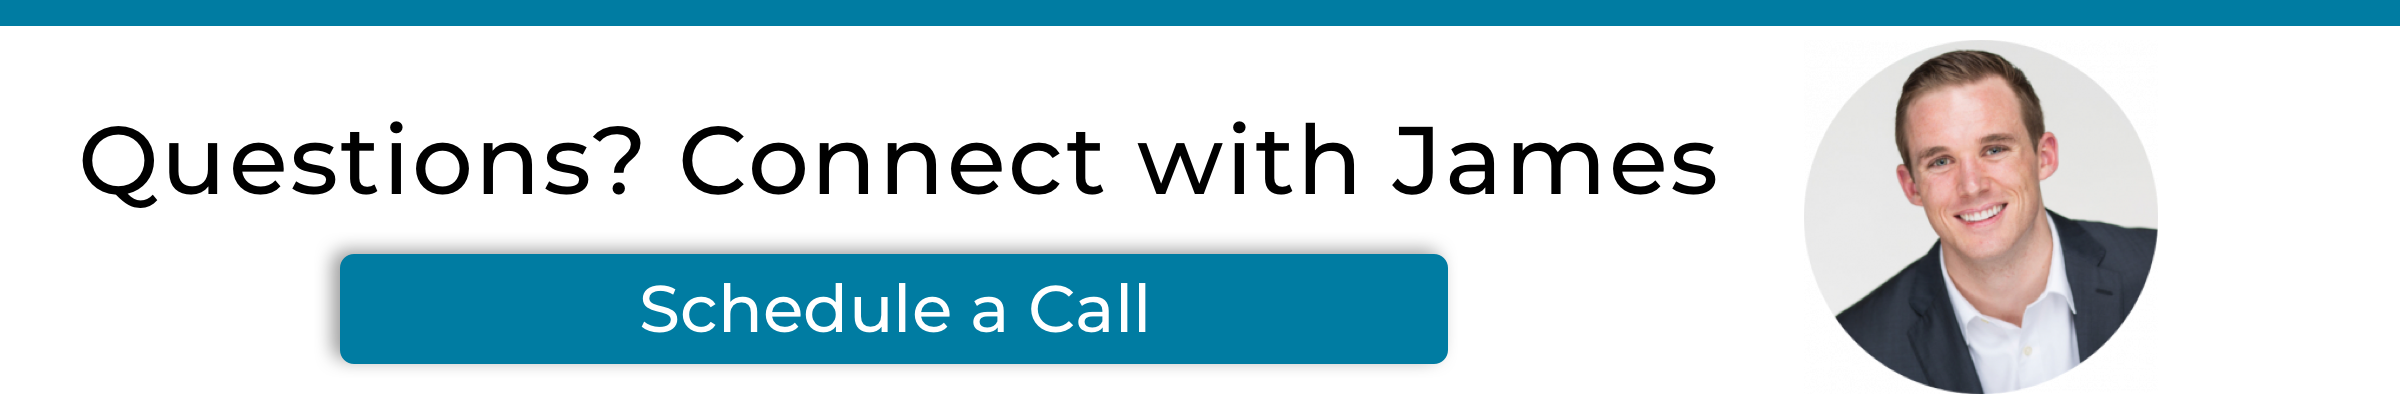 New call-to-action